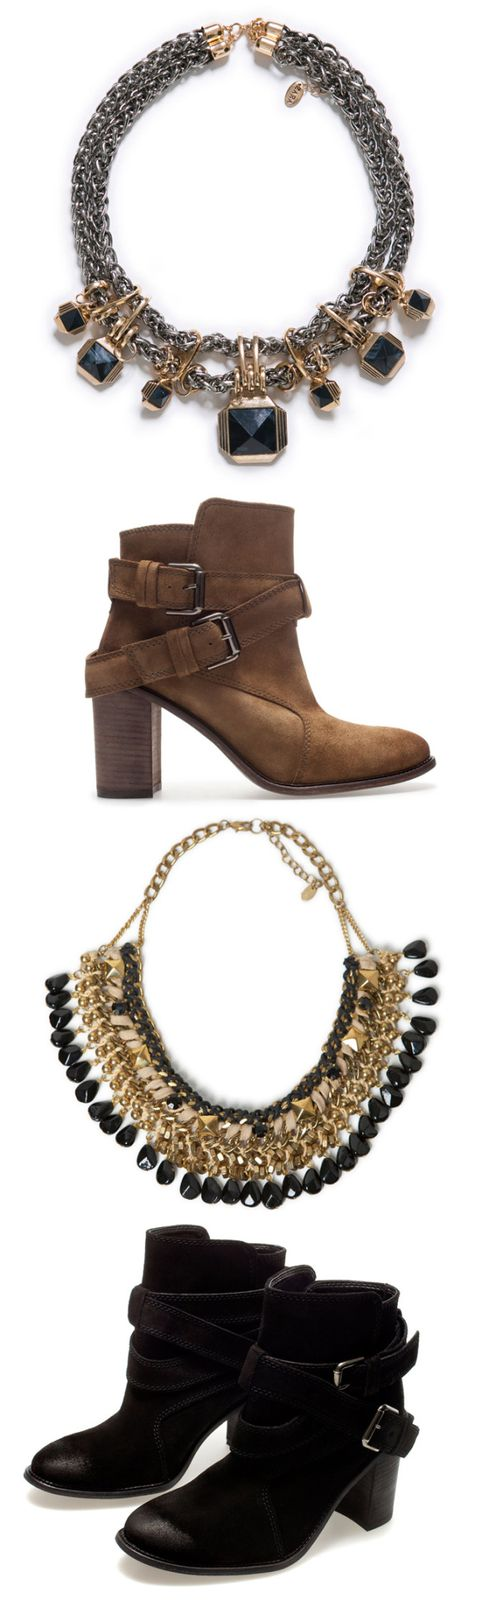 """NEW IN"" Zara Ankle Boots and Statement Necklaces"